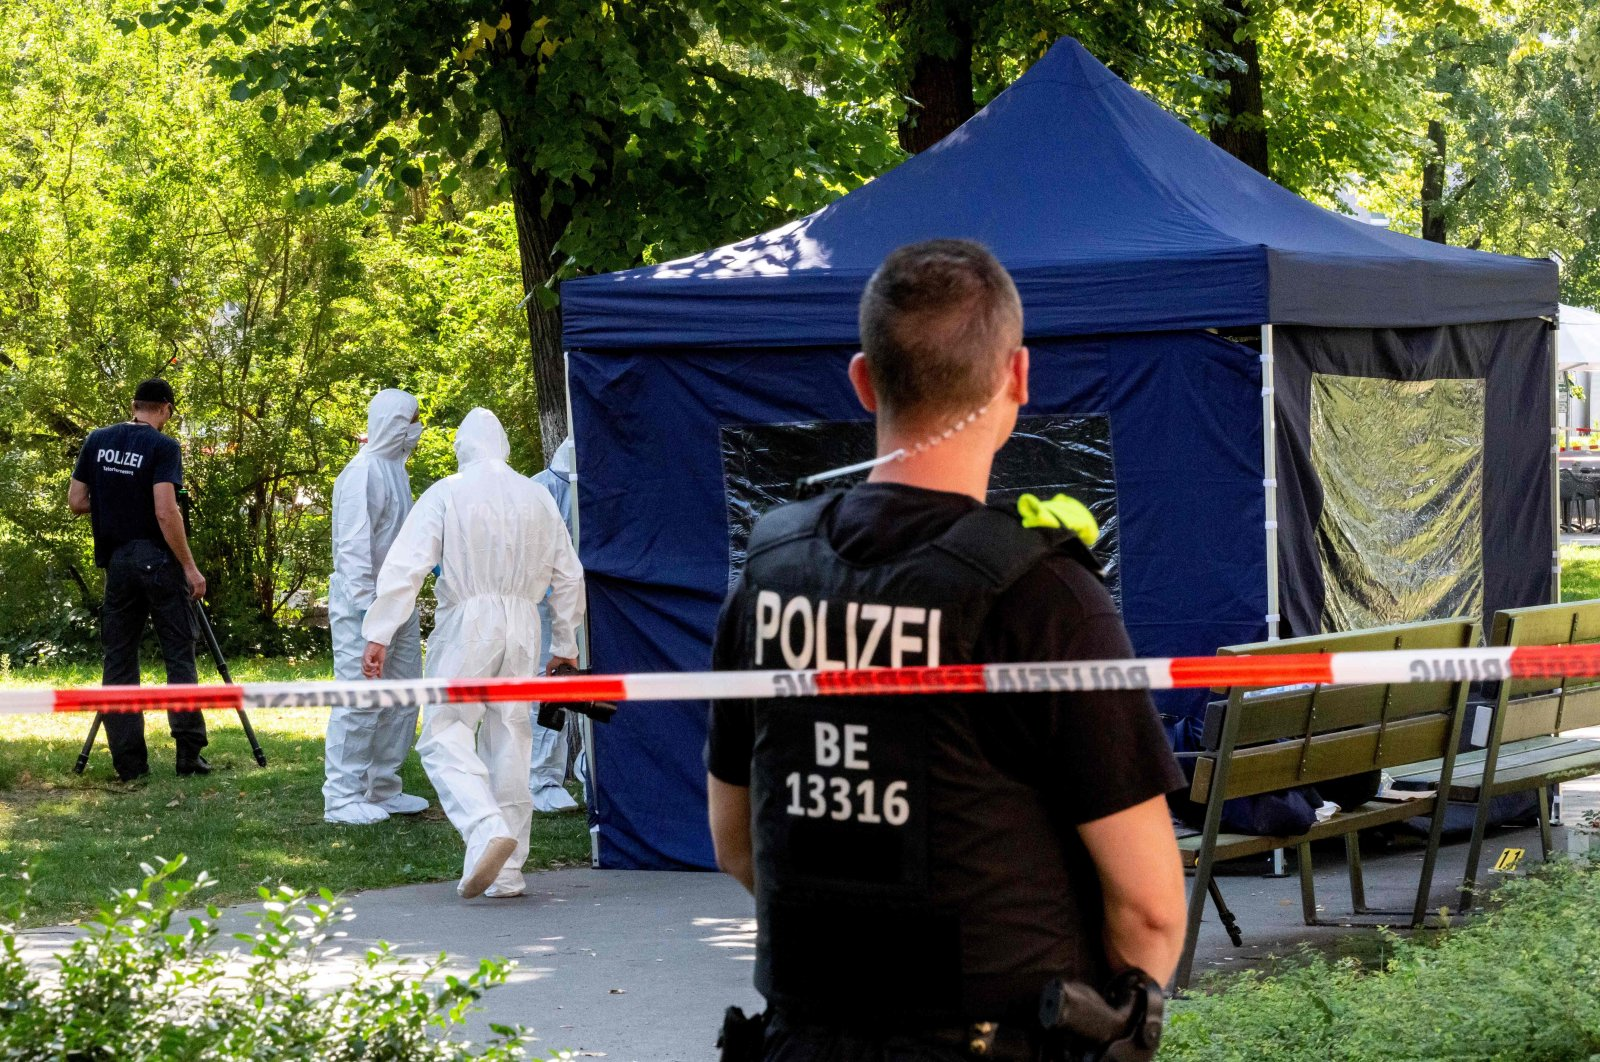 Forensic experts of the police secure evidence at the site of a crime scene in a park of Berlin's Moabit district, where a man of Georgian origin was shot dead, Germany, Aug. 23, 2019. (AFP Photo)